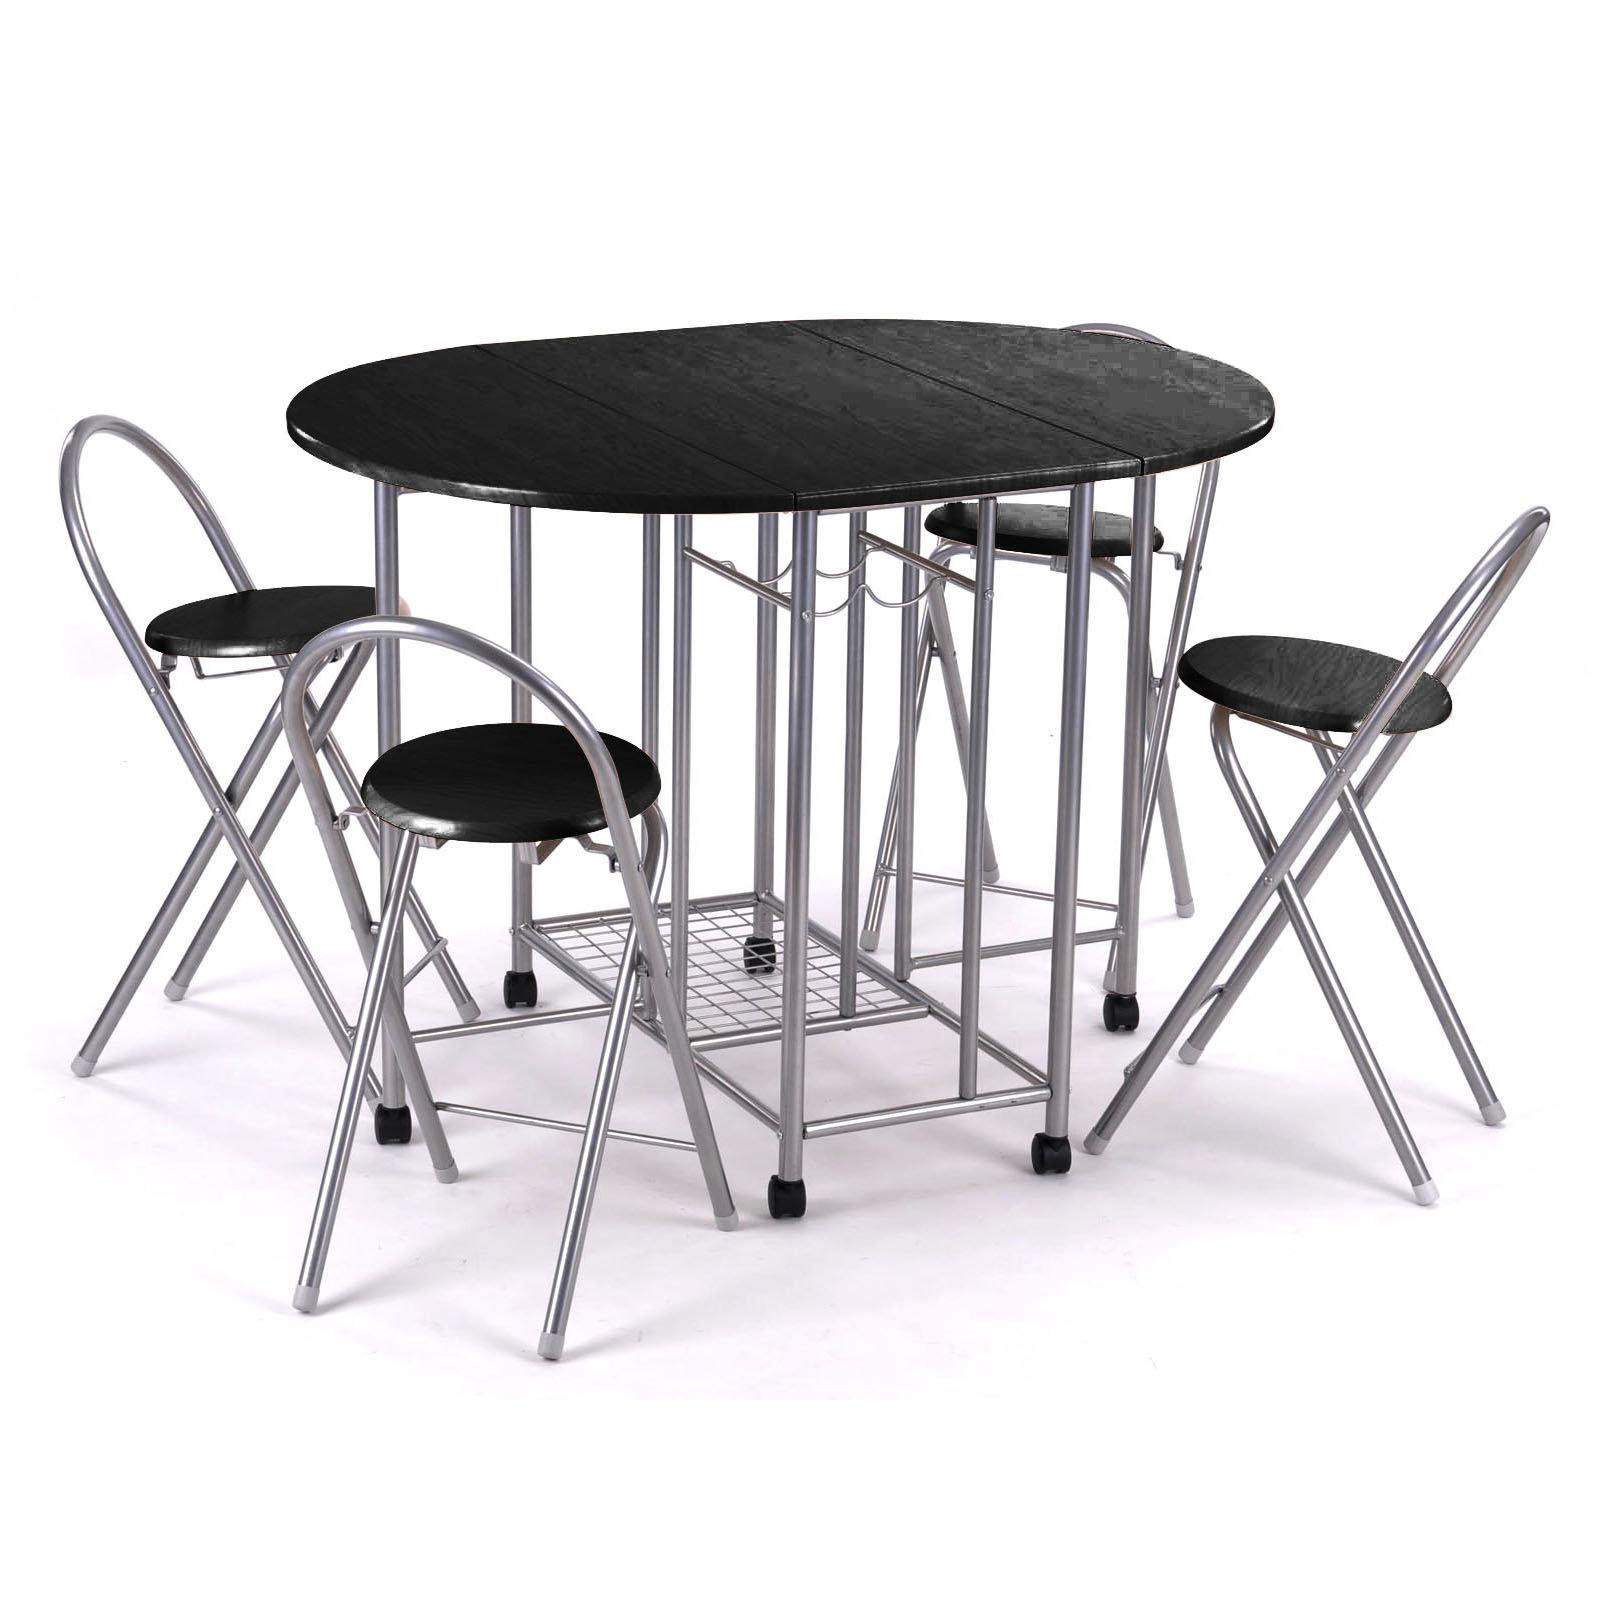 5pc kitchen dinette dinning folding table and chairs set for Black kitchen table and chairs